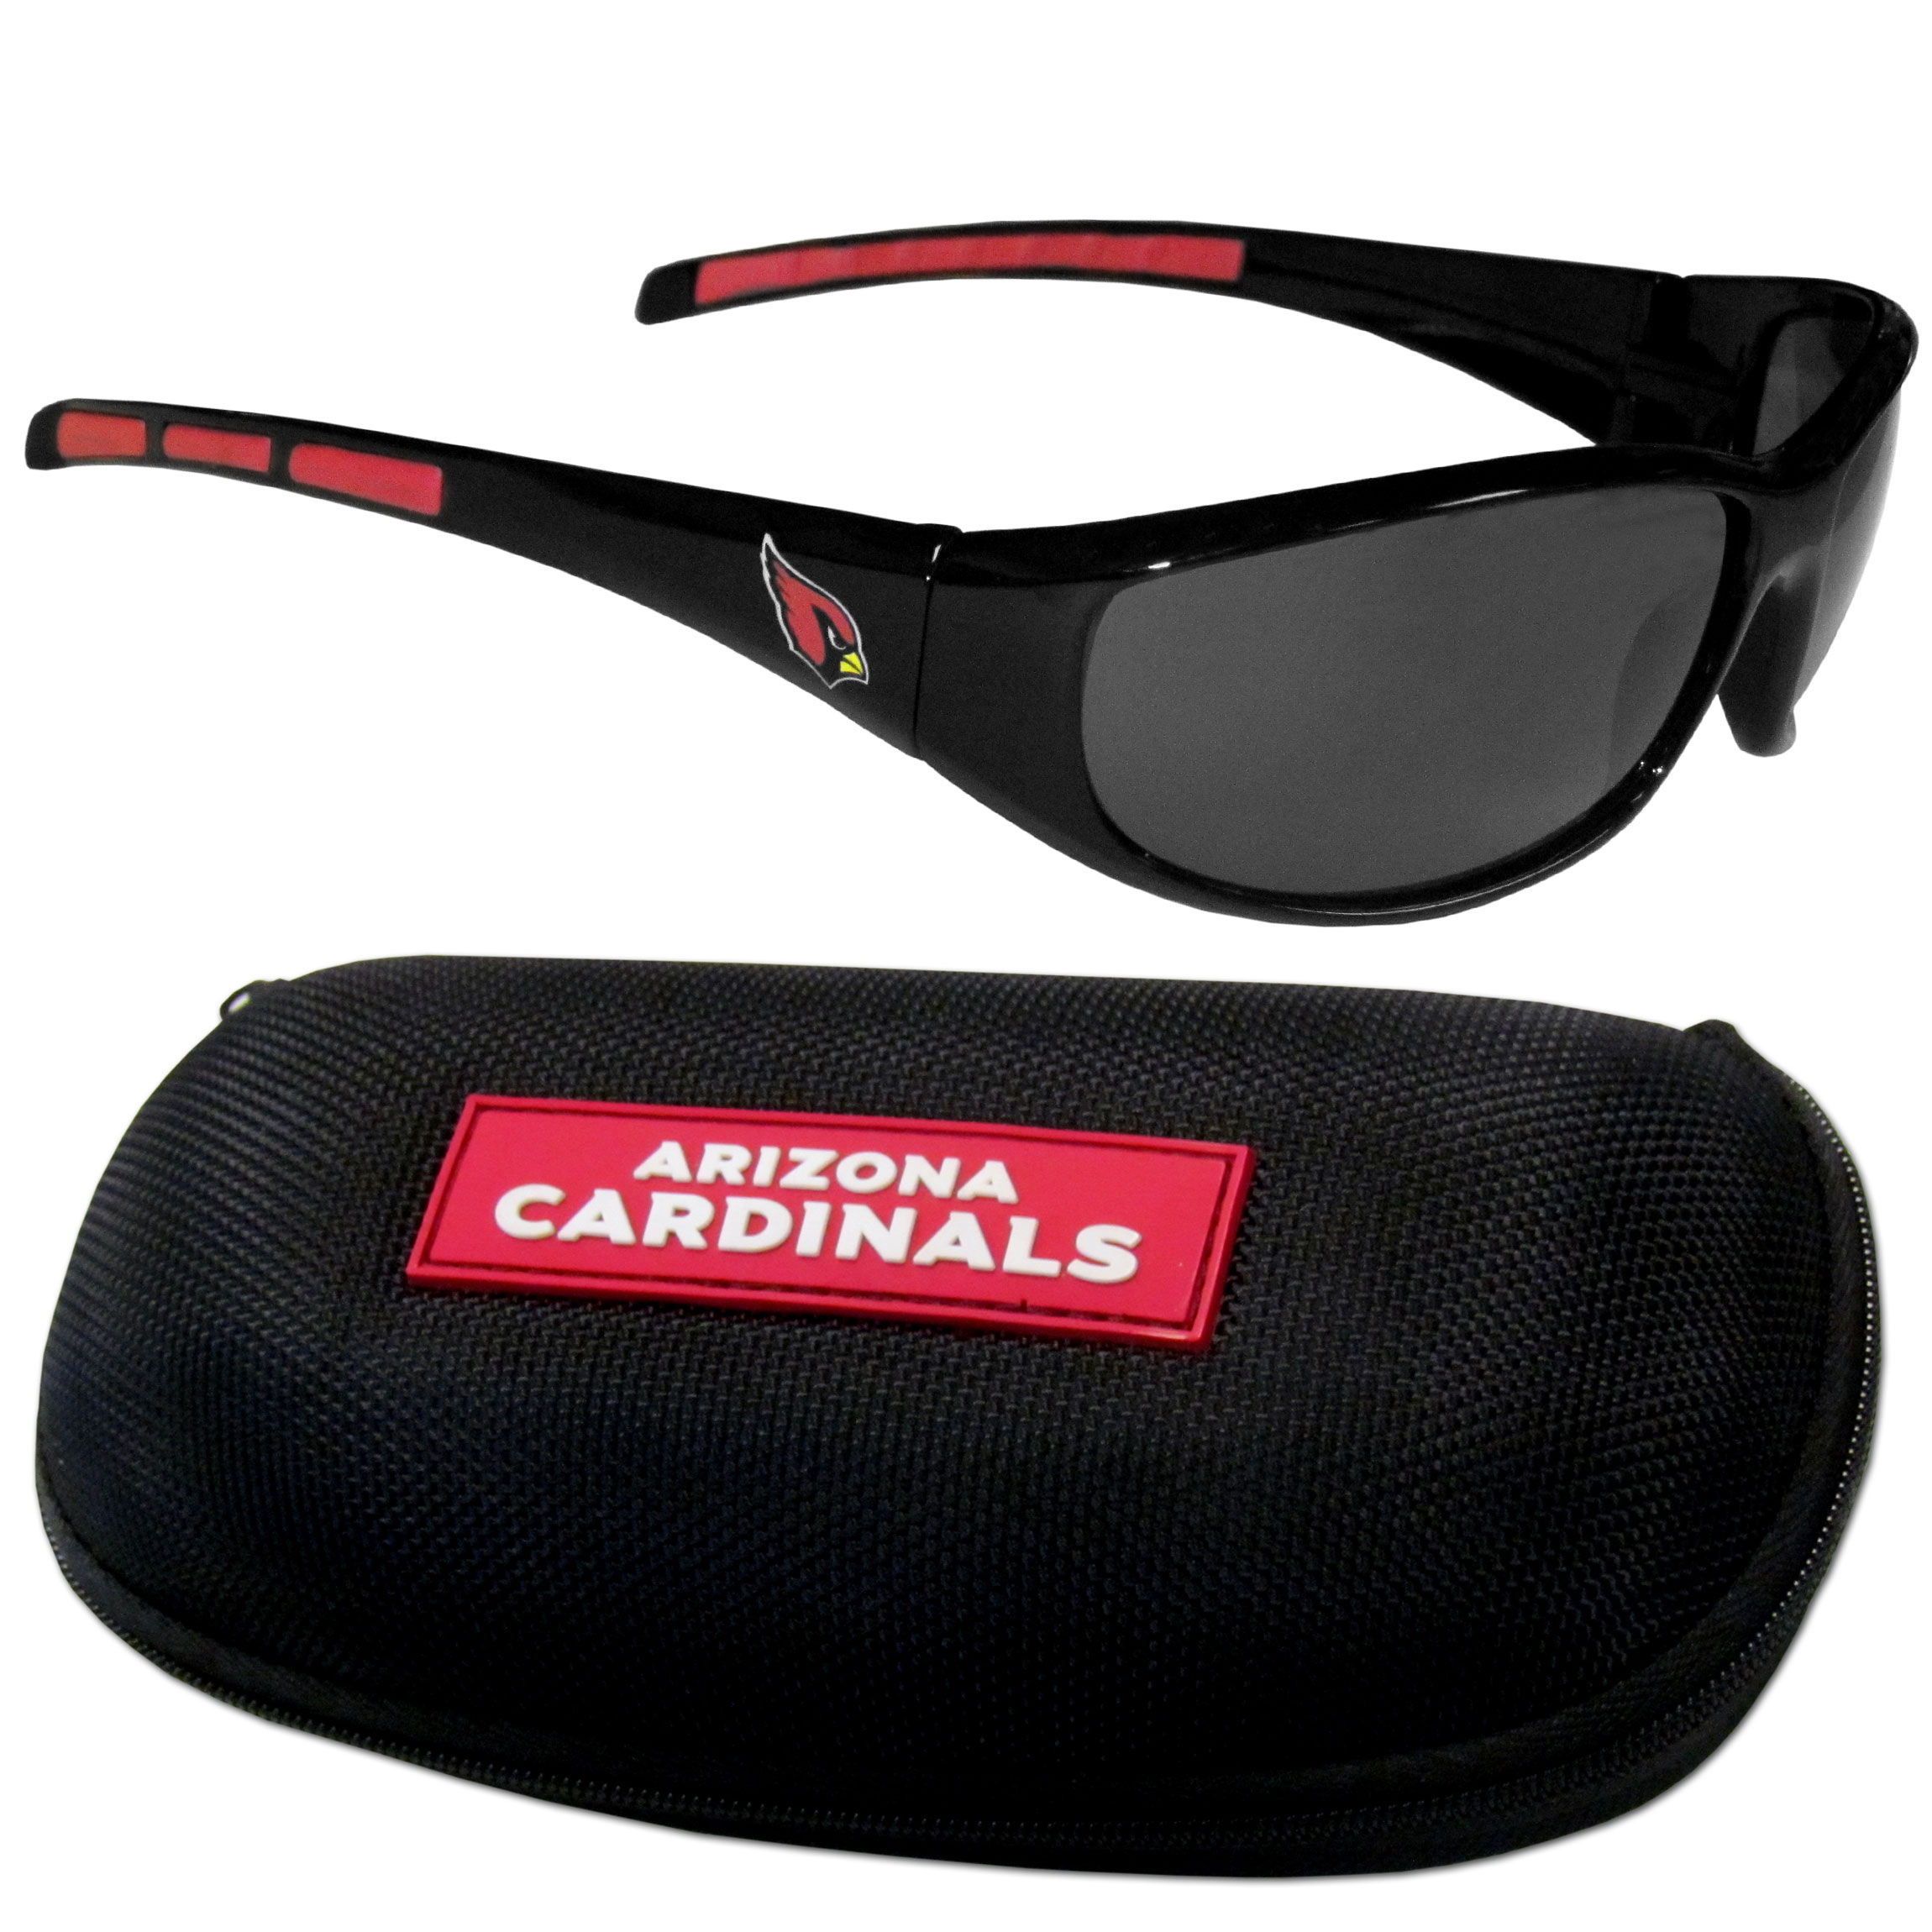 Arizona Cardinals Wrap Sunglass and Case Set - This great set includes a high quality pair of Arizona Cardinals wrap sunglasses and hard carrying case.